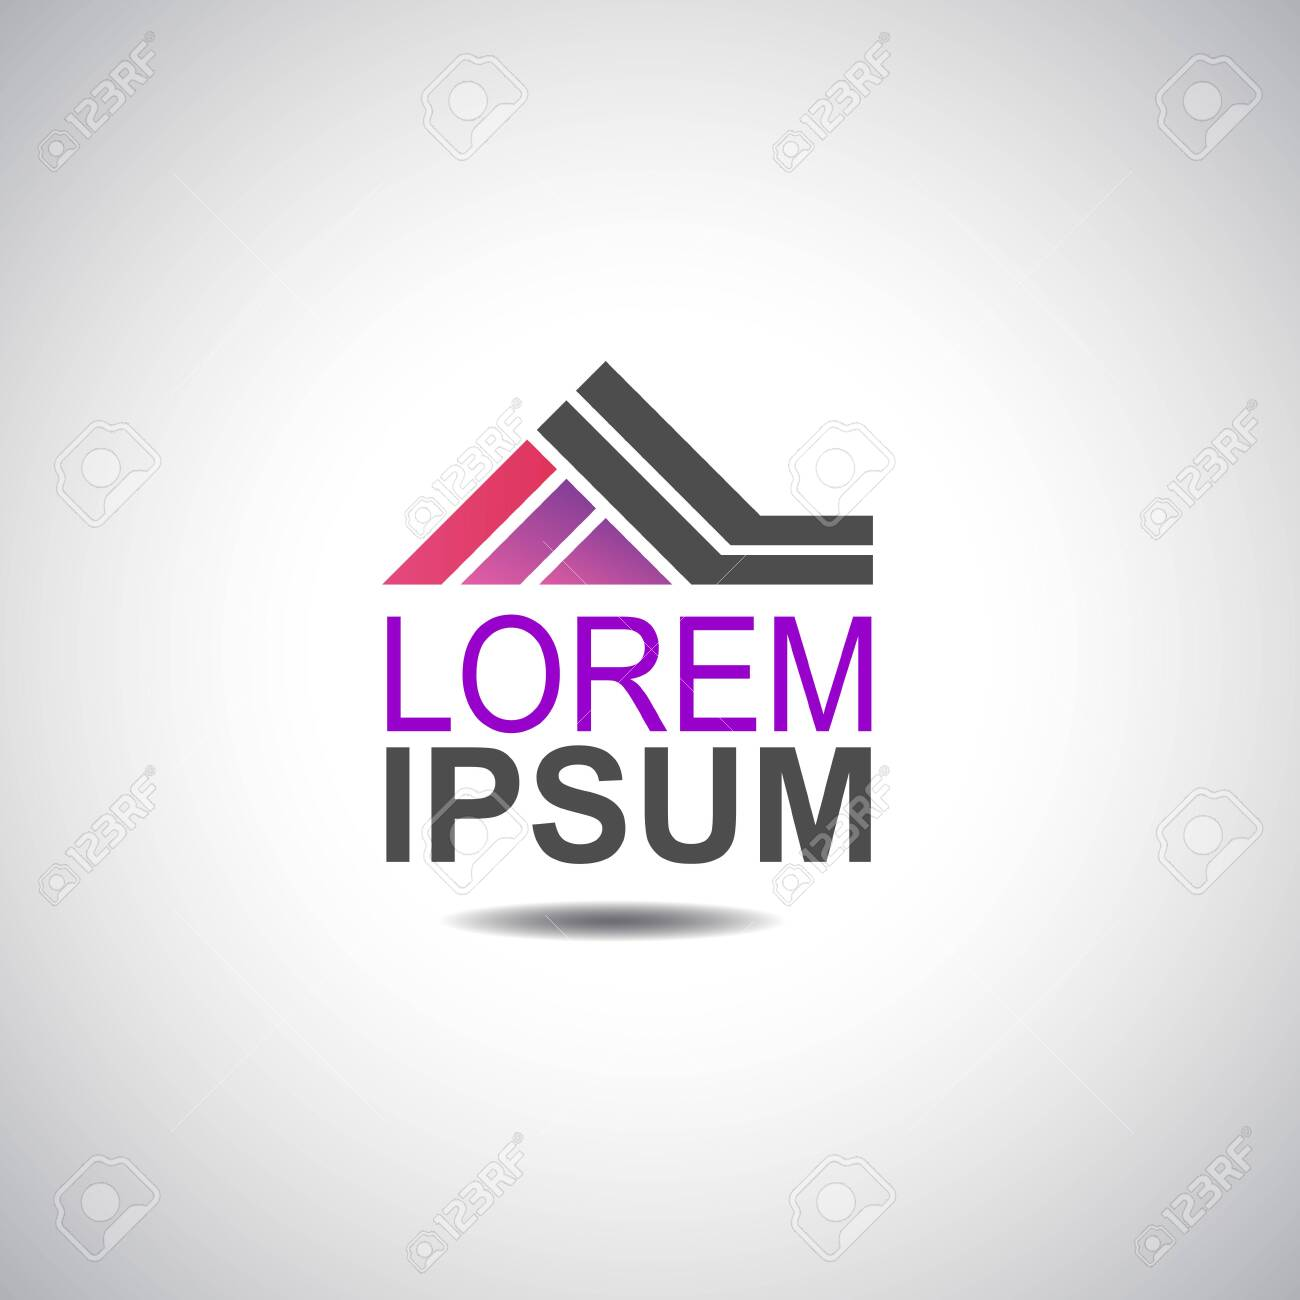 House logo for company vector image - 120133287